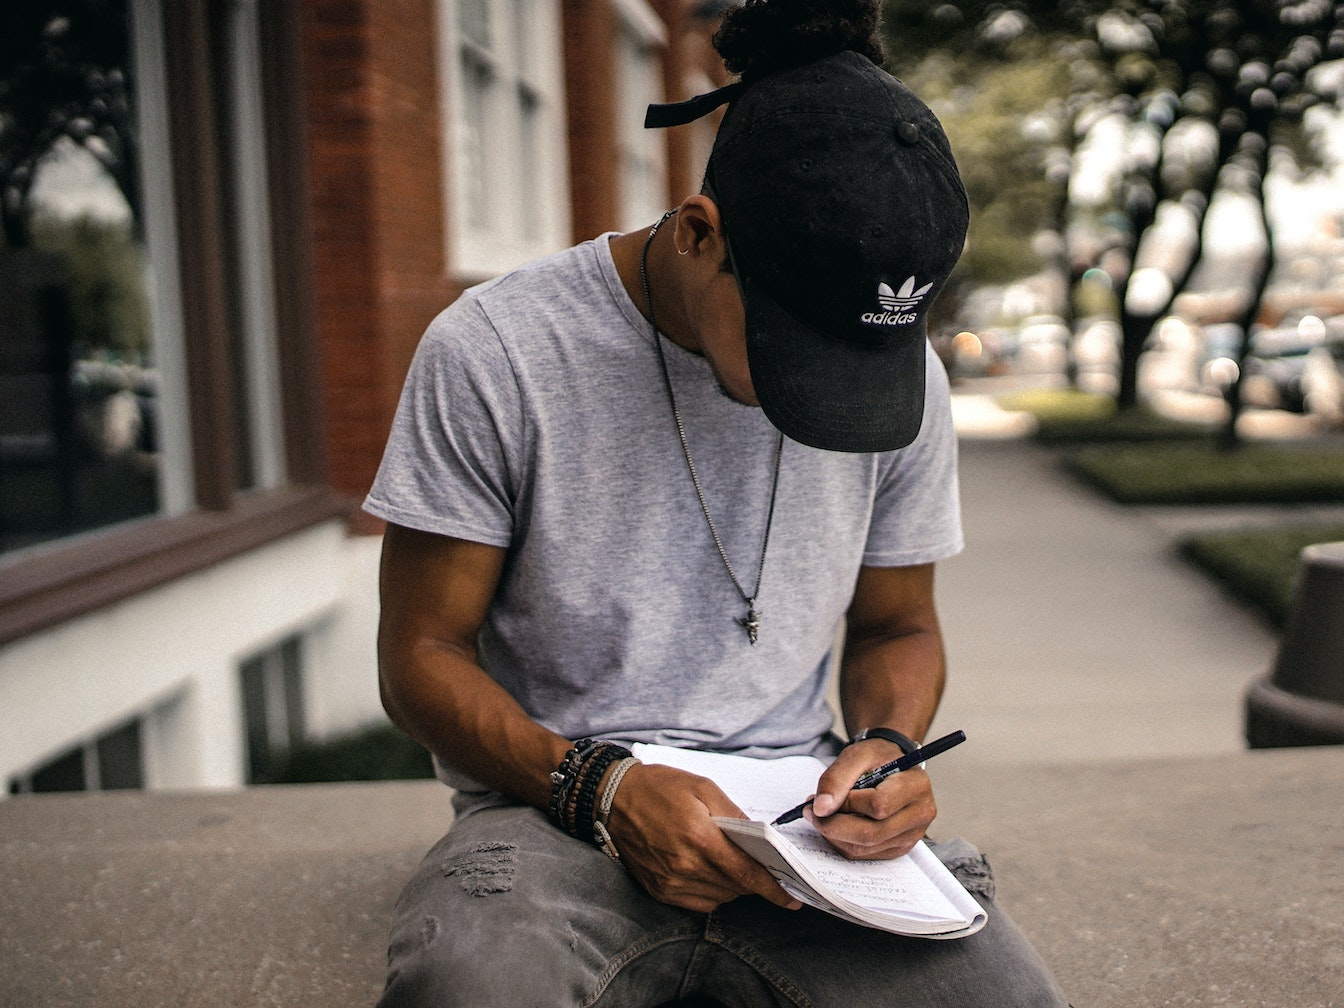 A man with a cap writing in a notebook